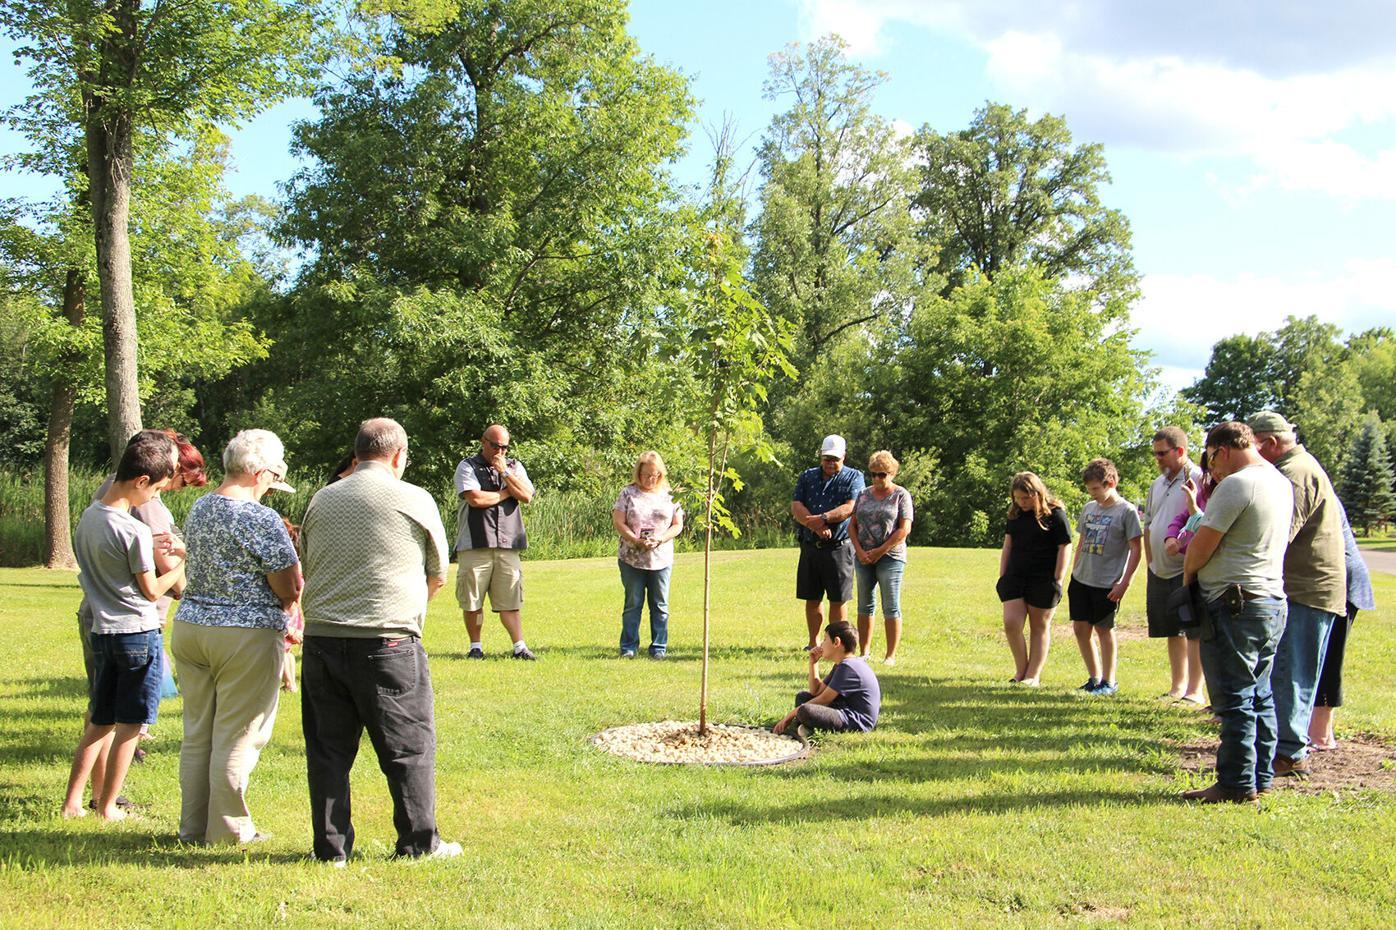 Tree-planting memorial events